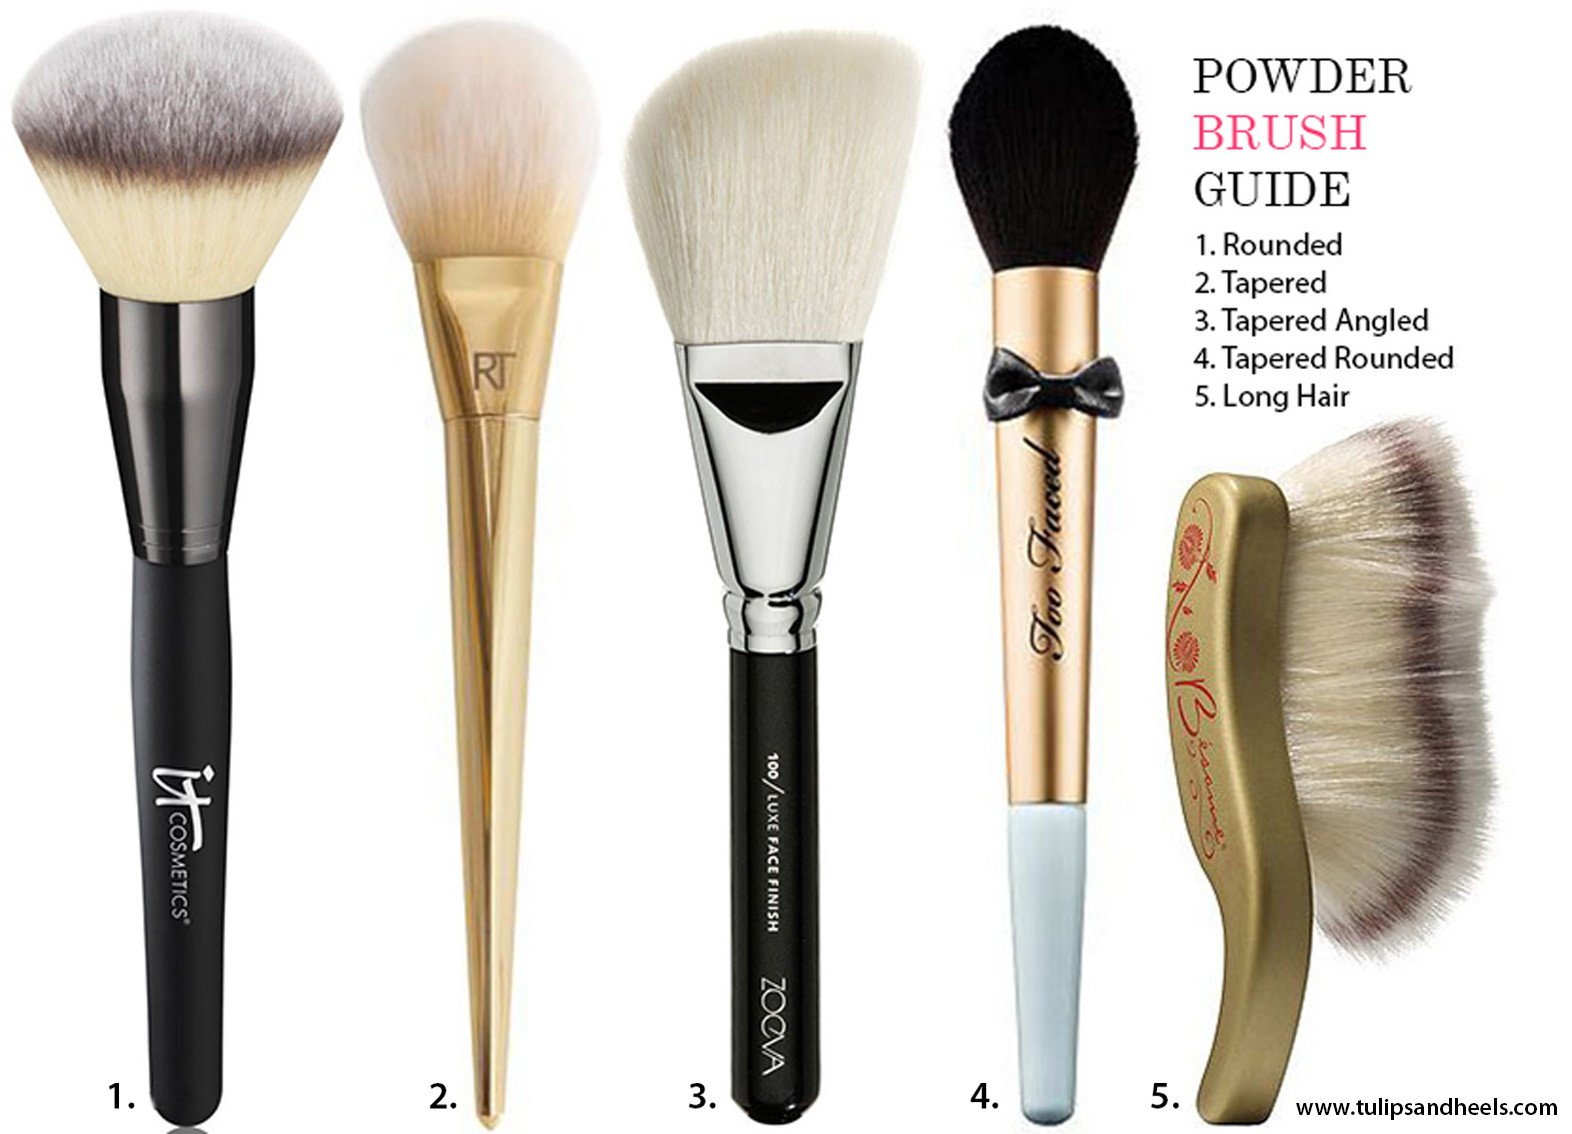 Powder Brush Guide